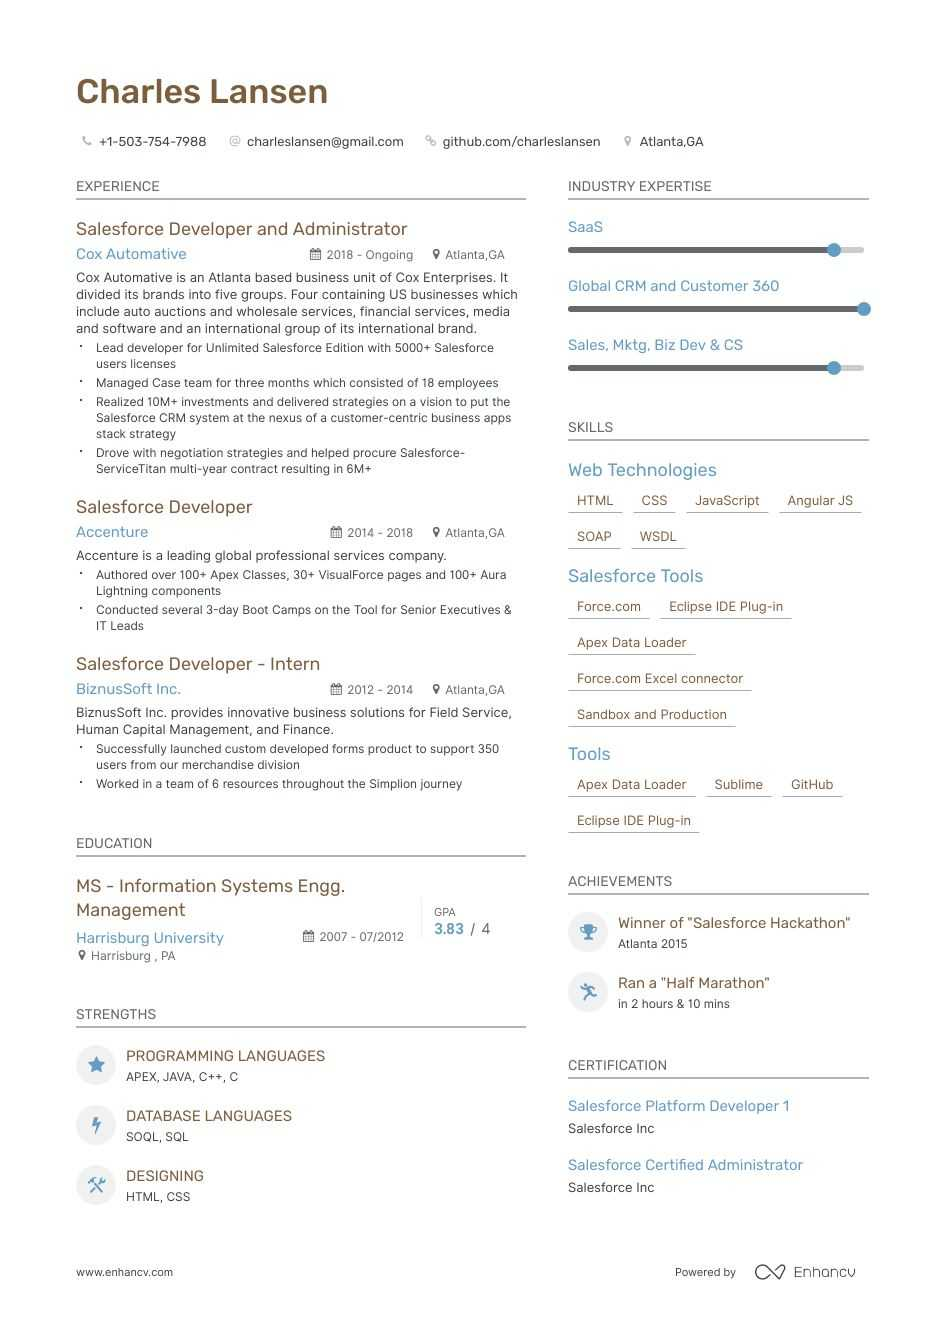 Top Salesforce Developer Resume Examples 9 Samples